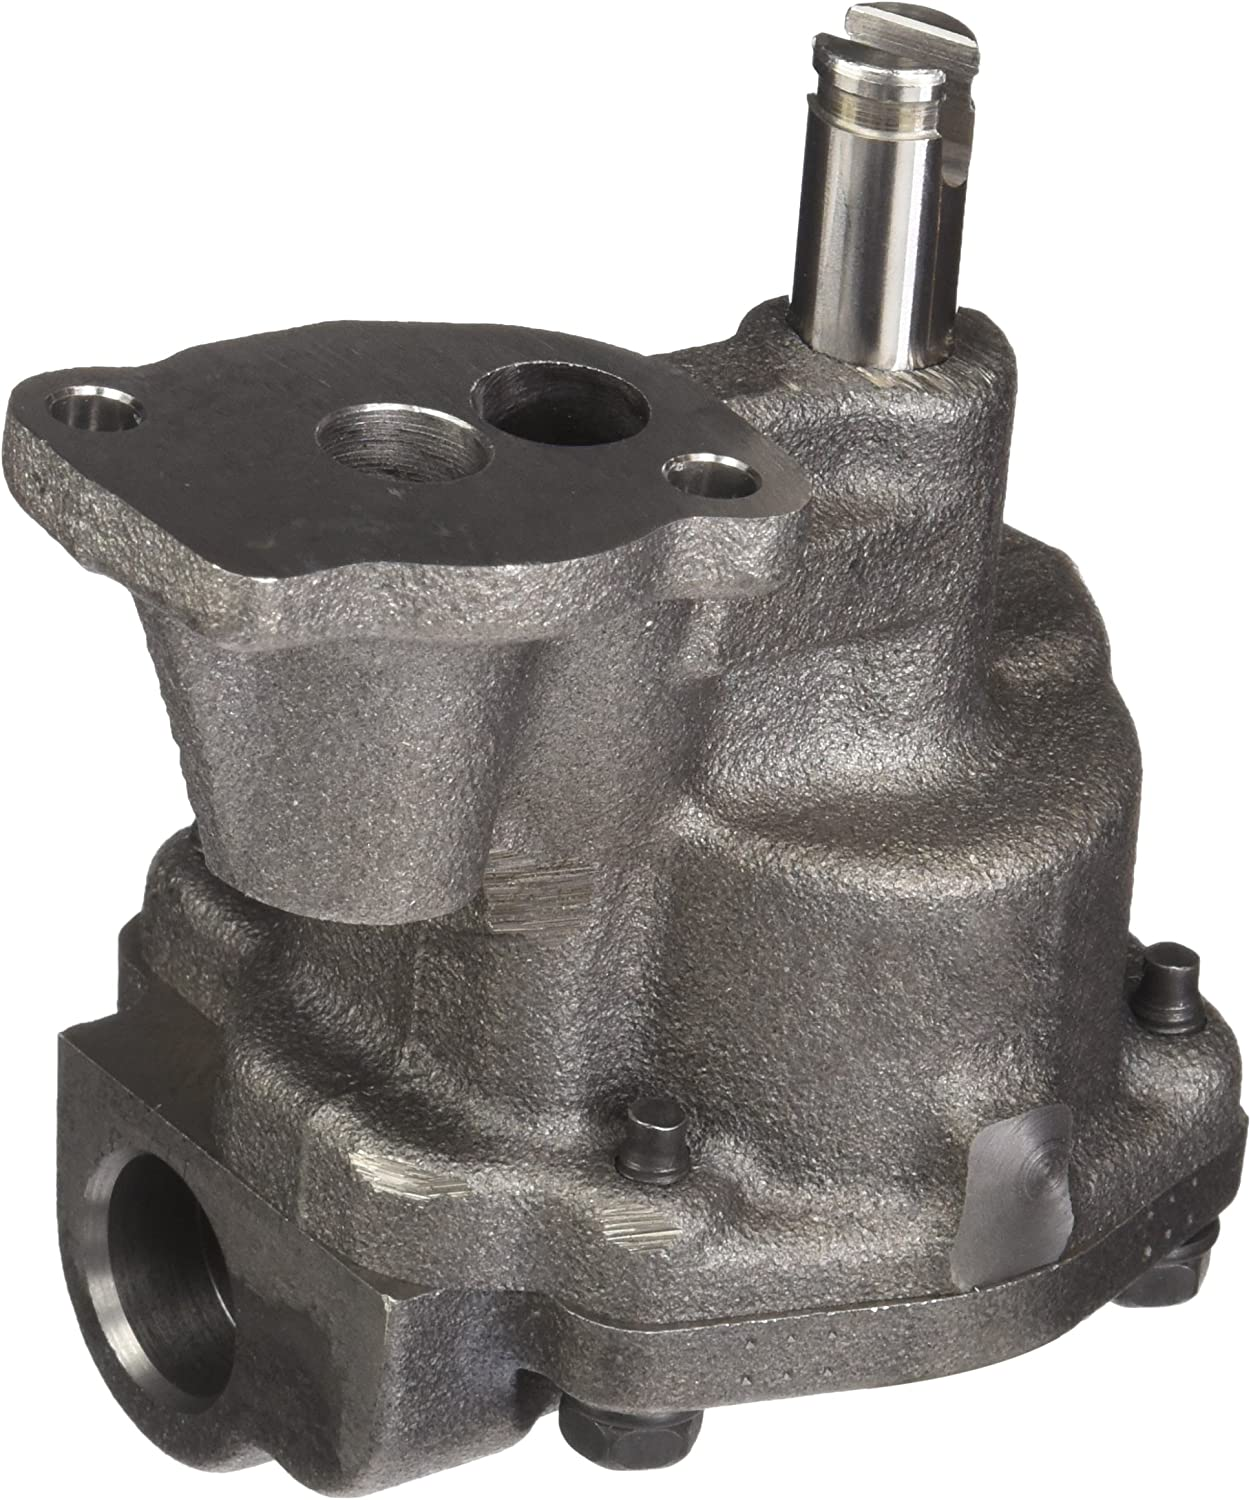 Sealed Power Free shipping anywhere in the nation Ranking TOP11 224-43469 Pump Oil